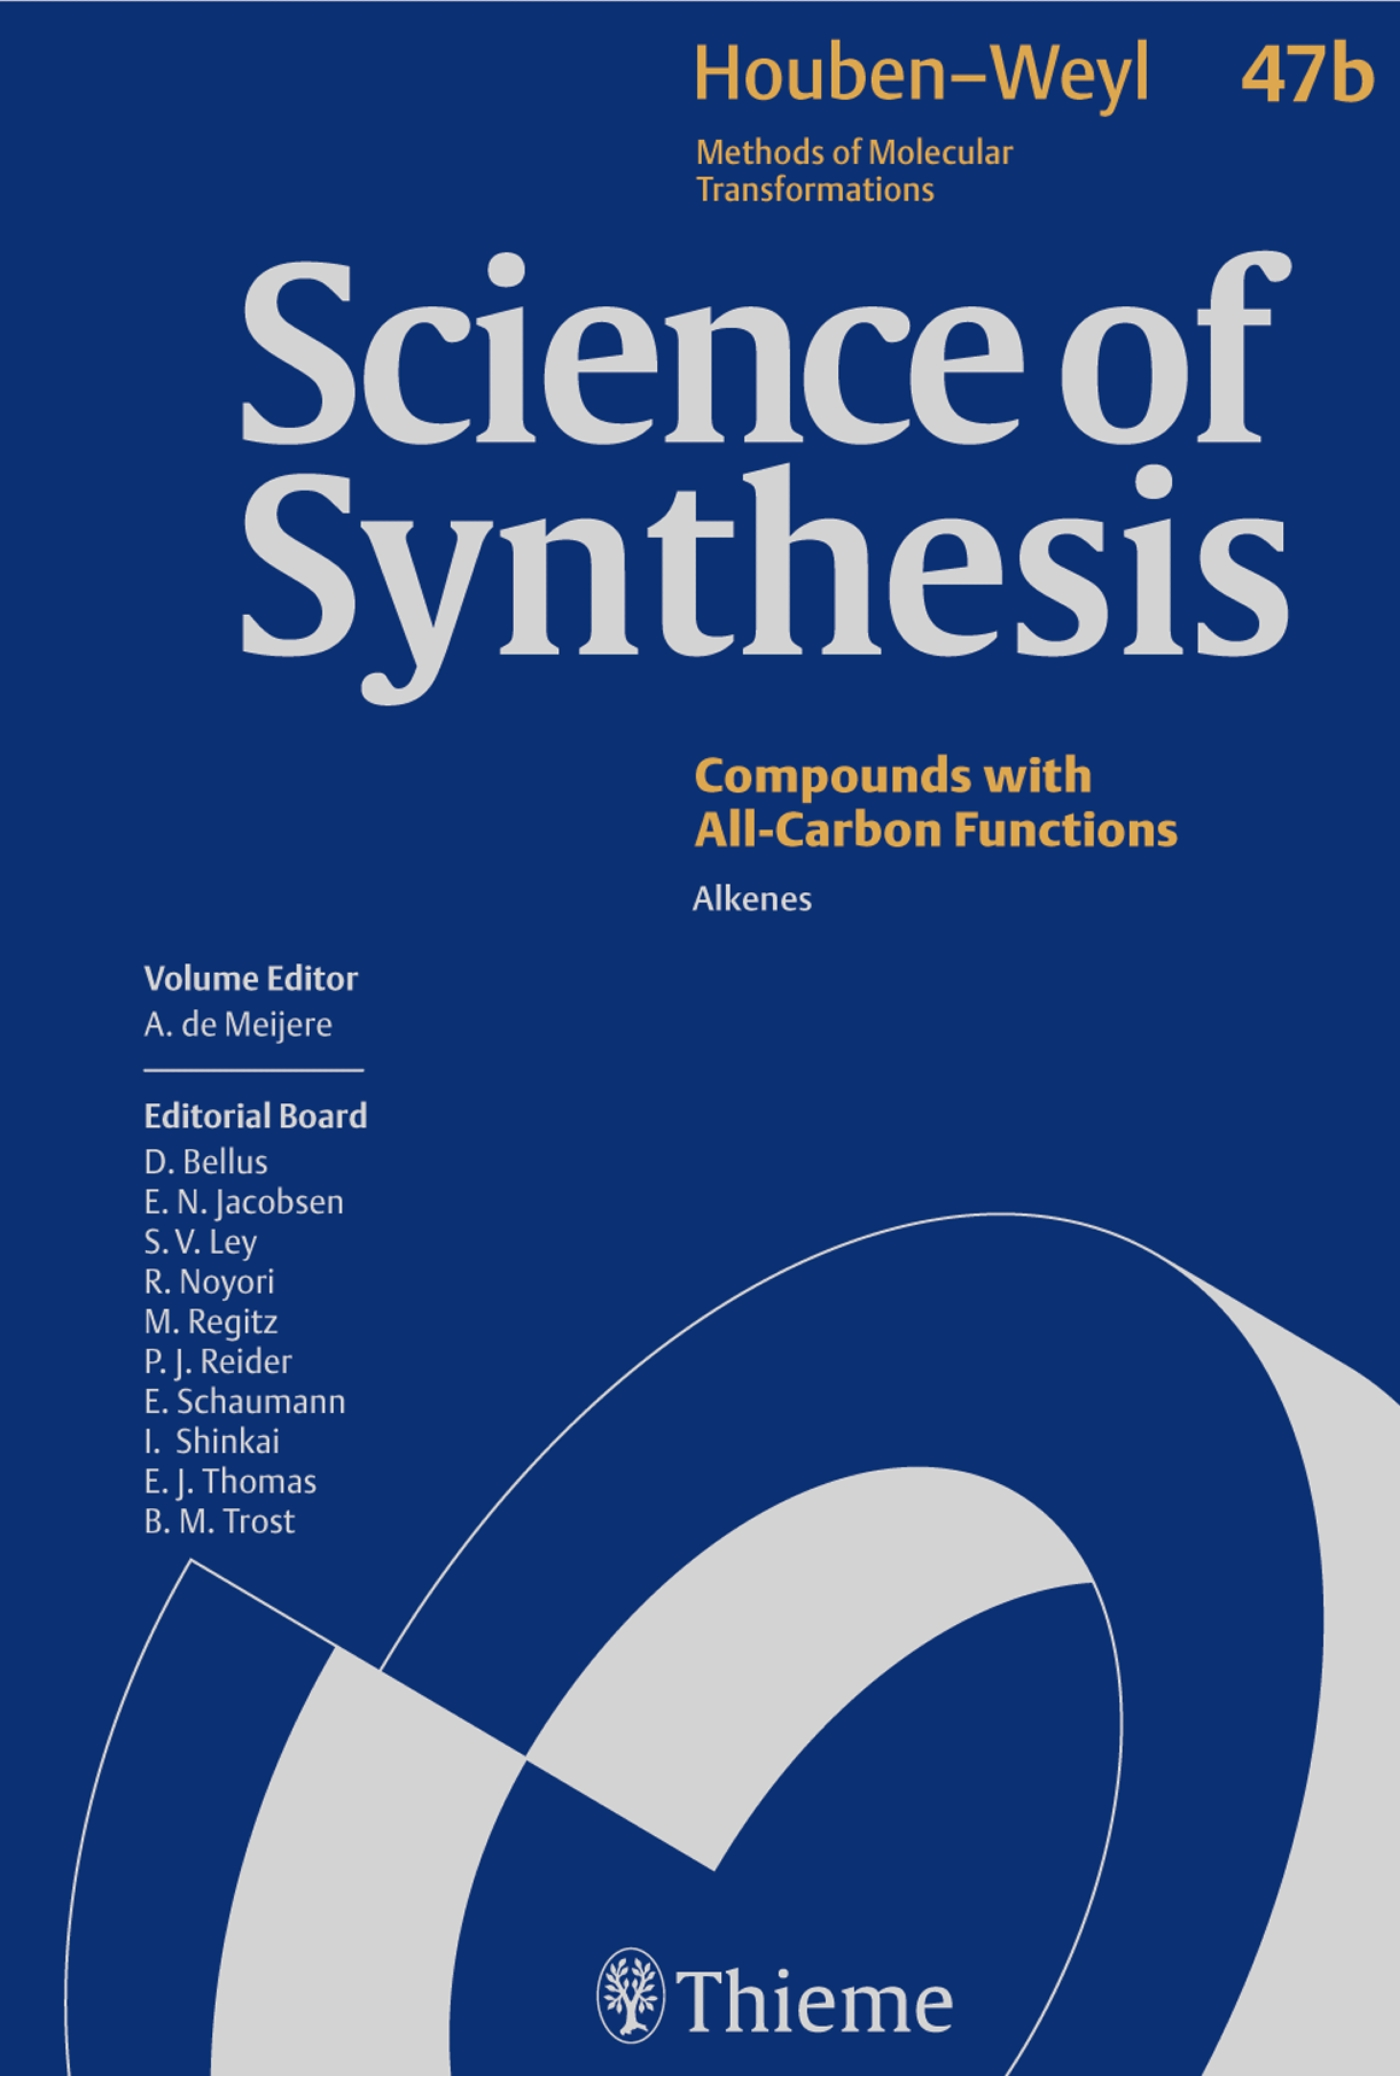 Science of Synthesis: Houben-Weyl Methods of Molecular Transformations  Vol. 47b